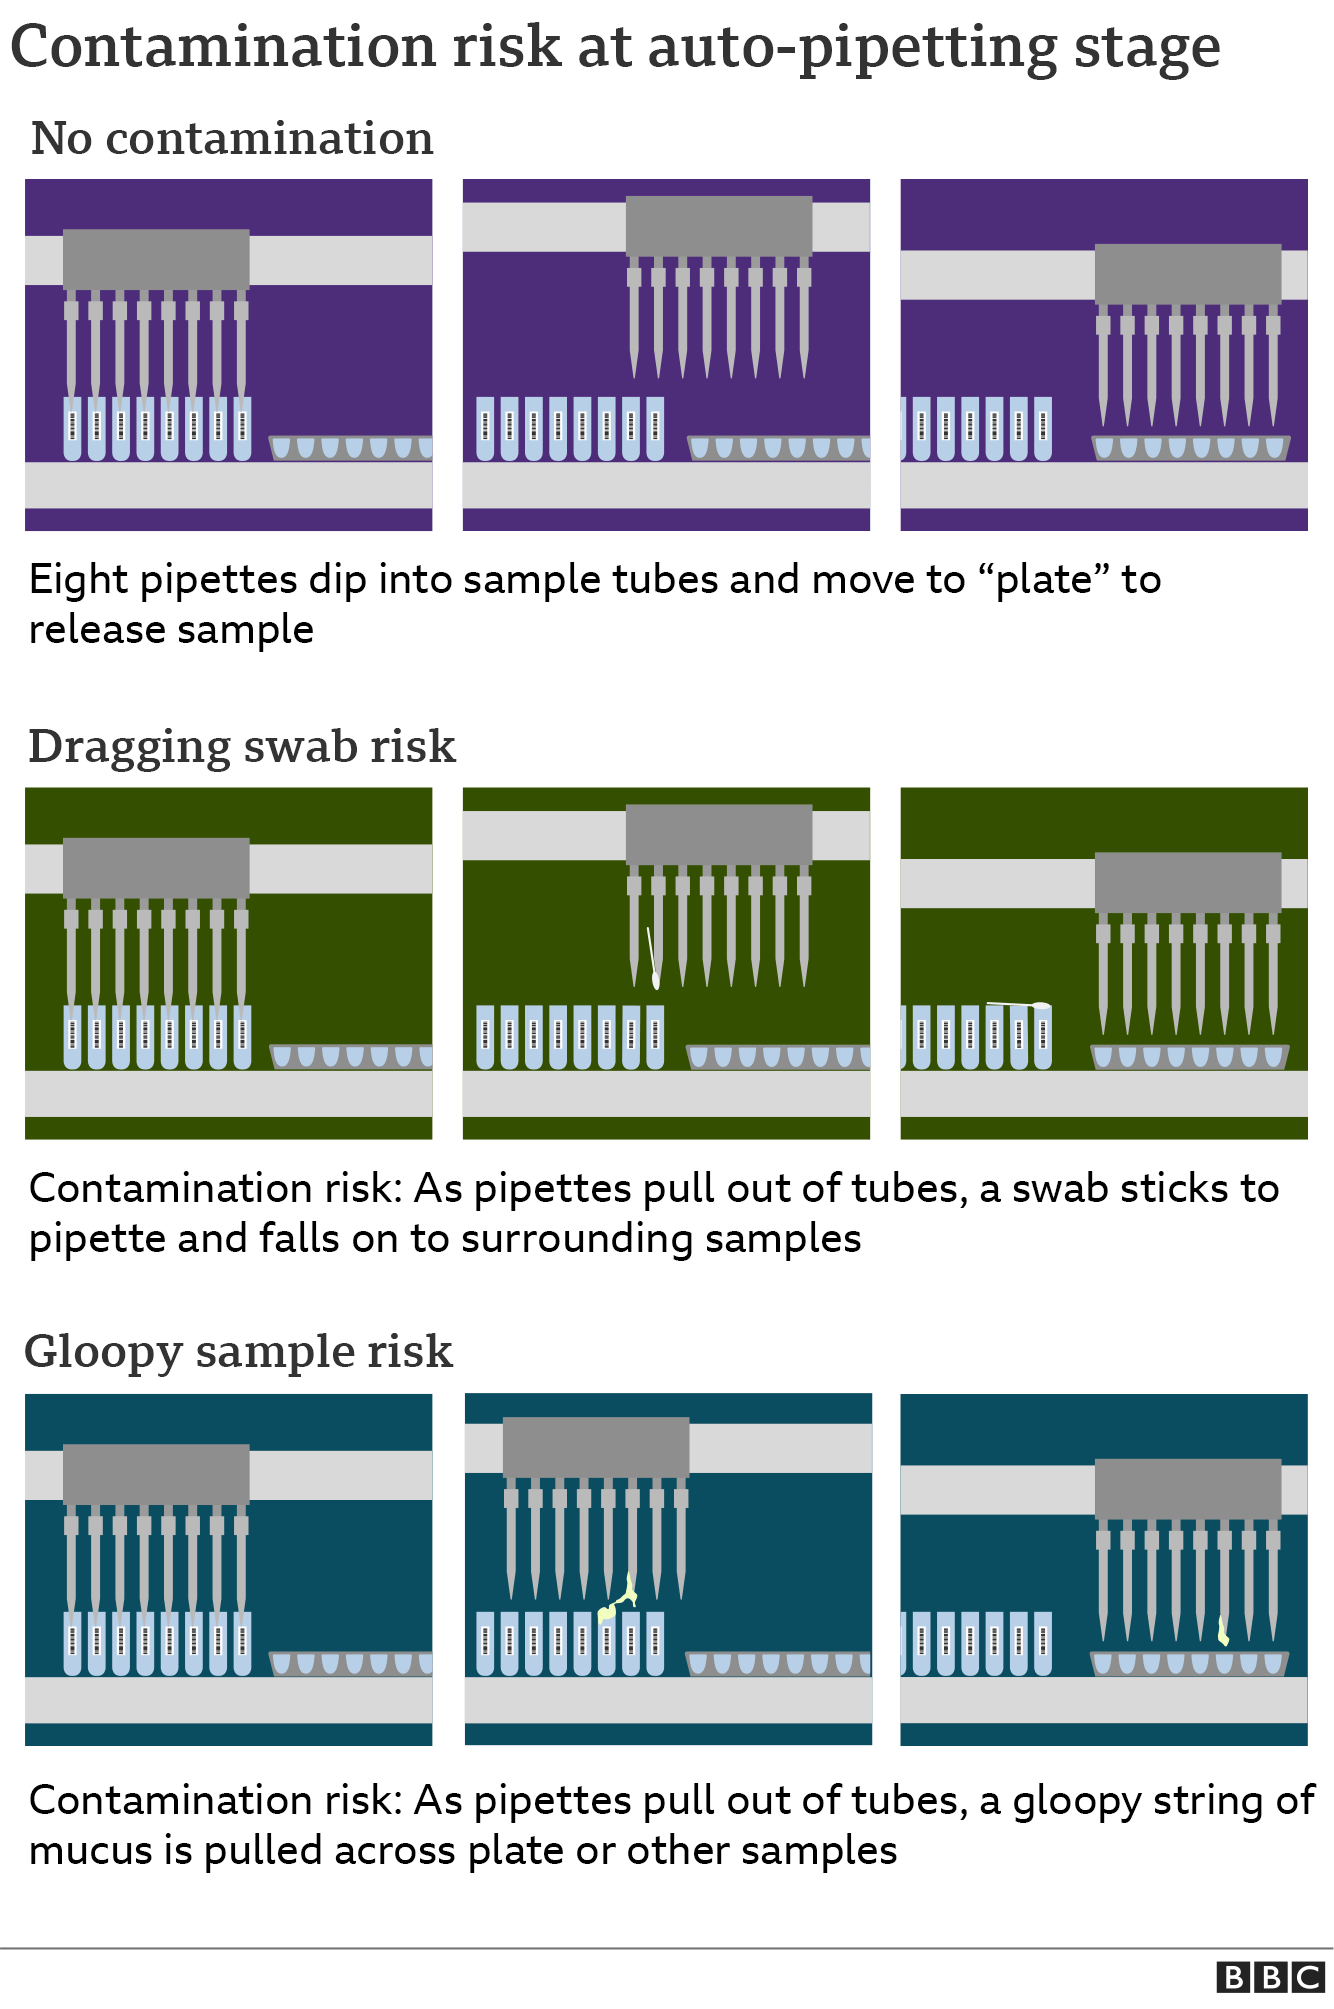 Graphic explaining the contamination risk at auto-pipetting stage